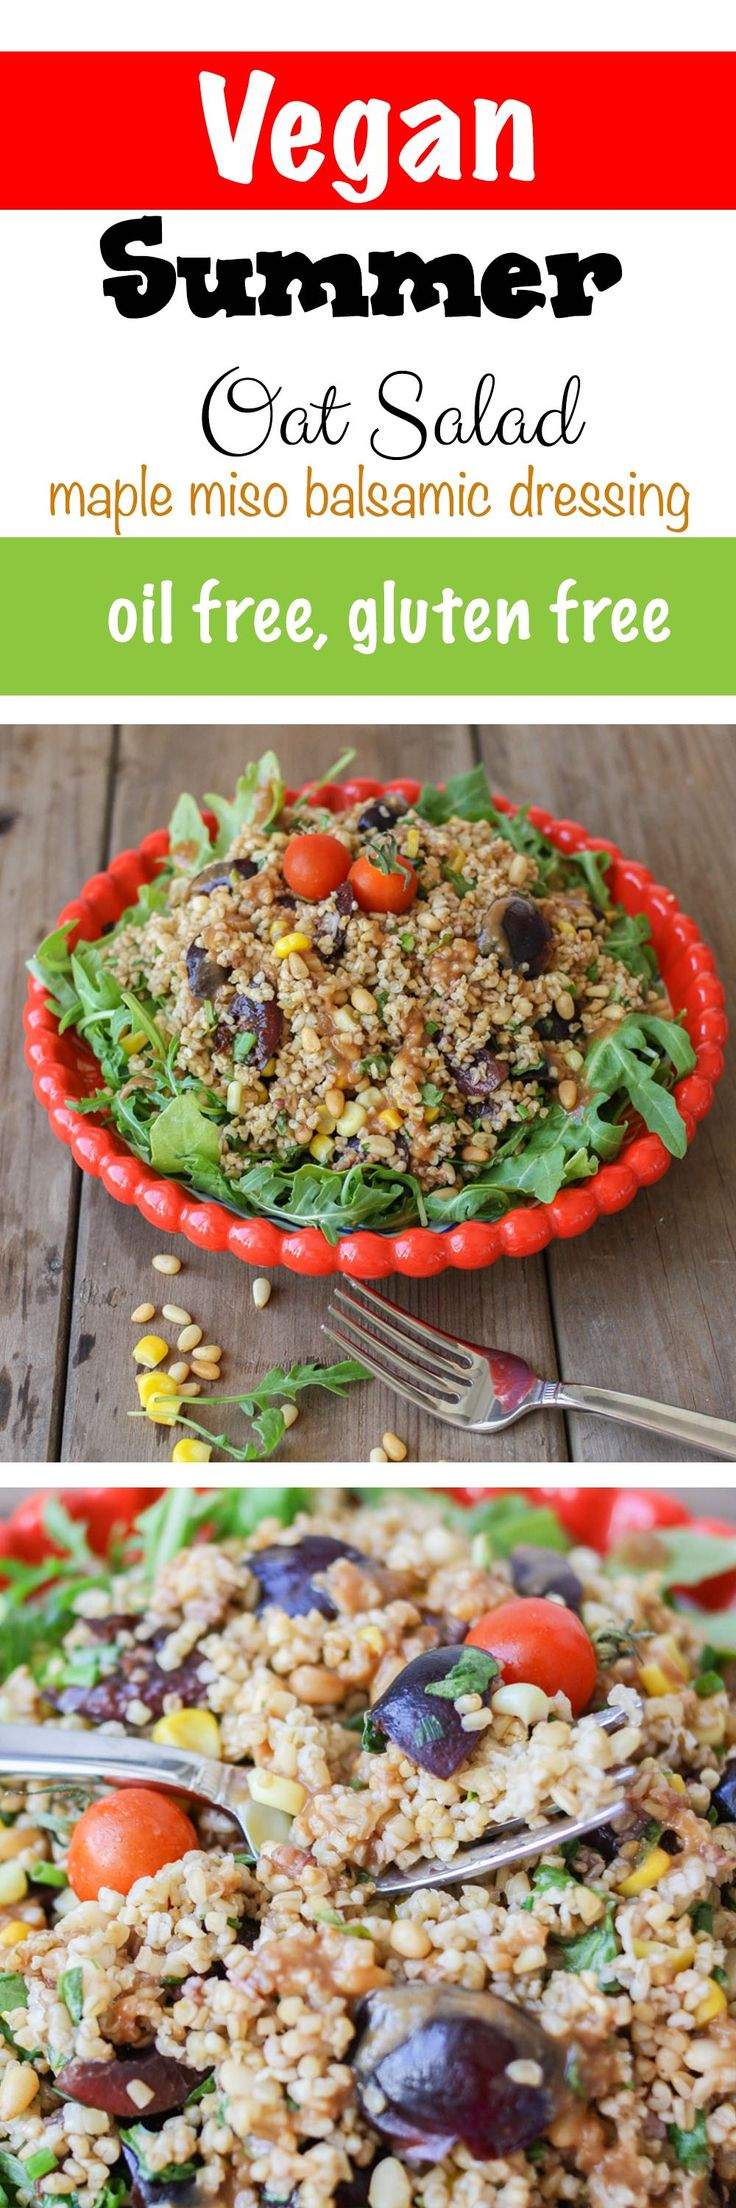 Summer Steel Cut Oat Salad with Maple Miso Balsamic Dressing | www.veggiesdontbite.com | #4thofjuly #independenceday #vegan #summer #barbecue #salad #glutenfree